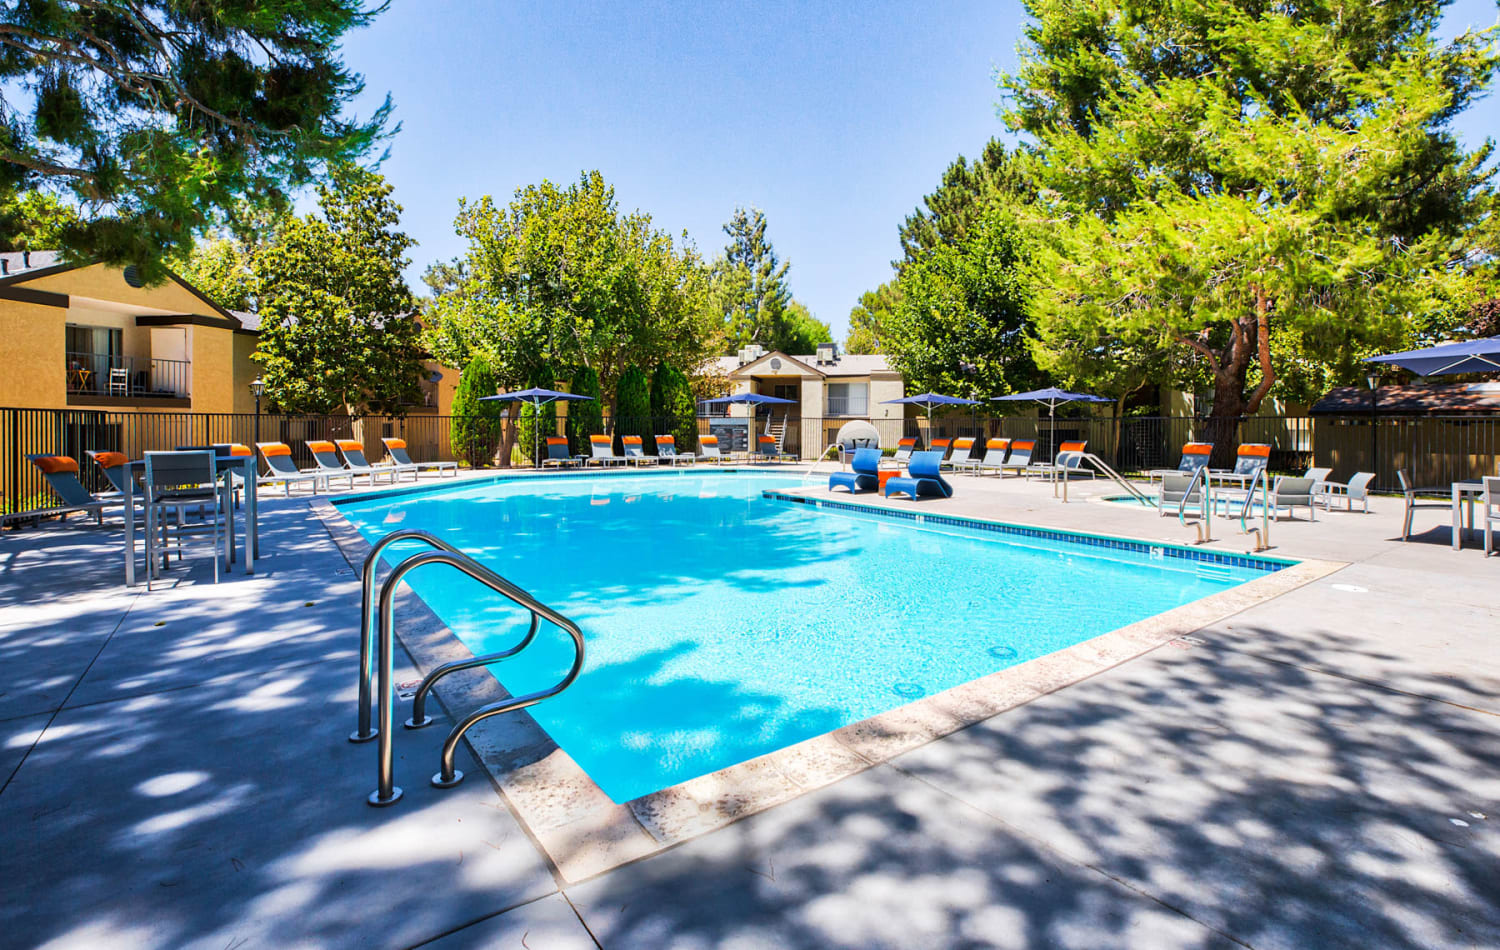 Resort-style swimming pool on a beautiful morning at Mountain Vista in Victorville, California